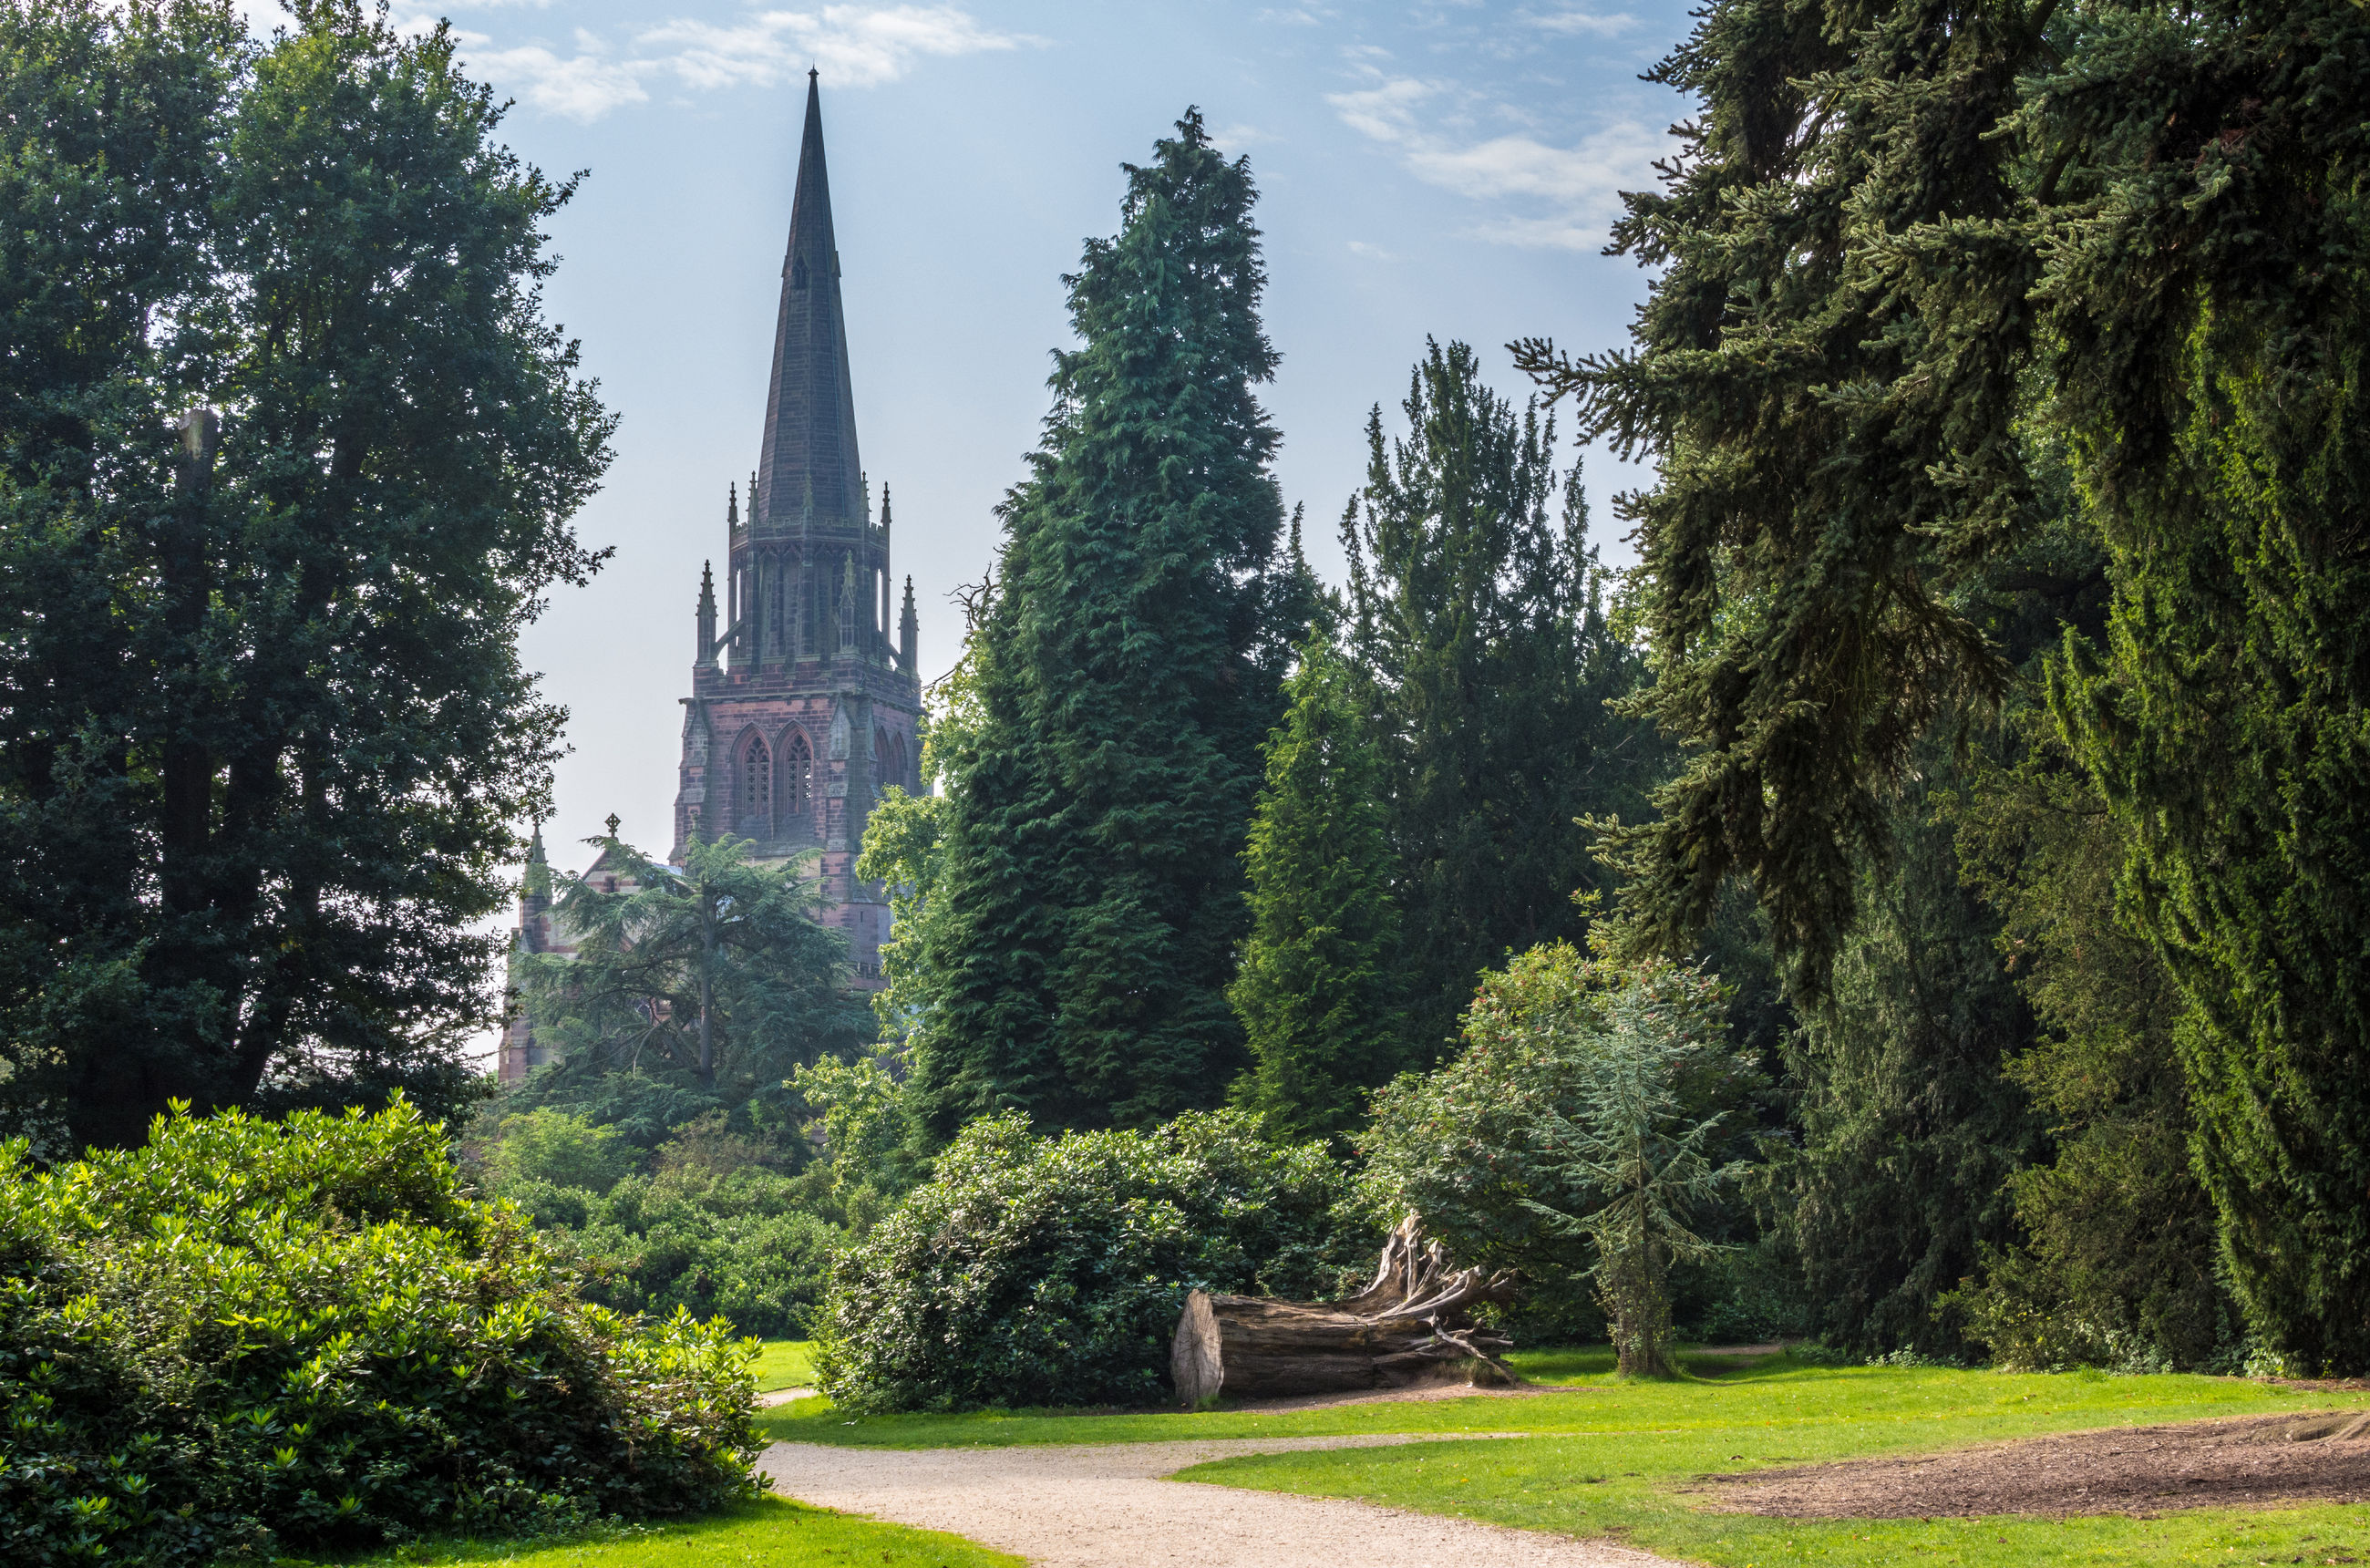 Trees growing at park against historic church